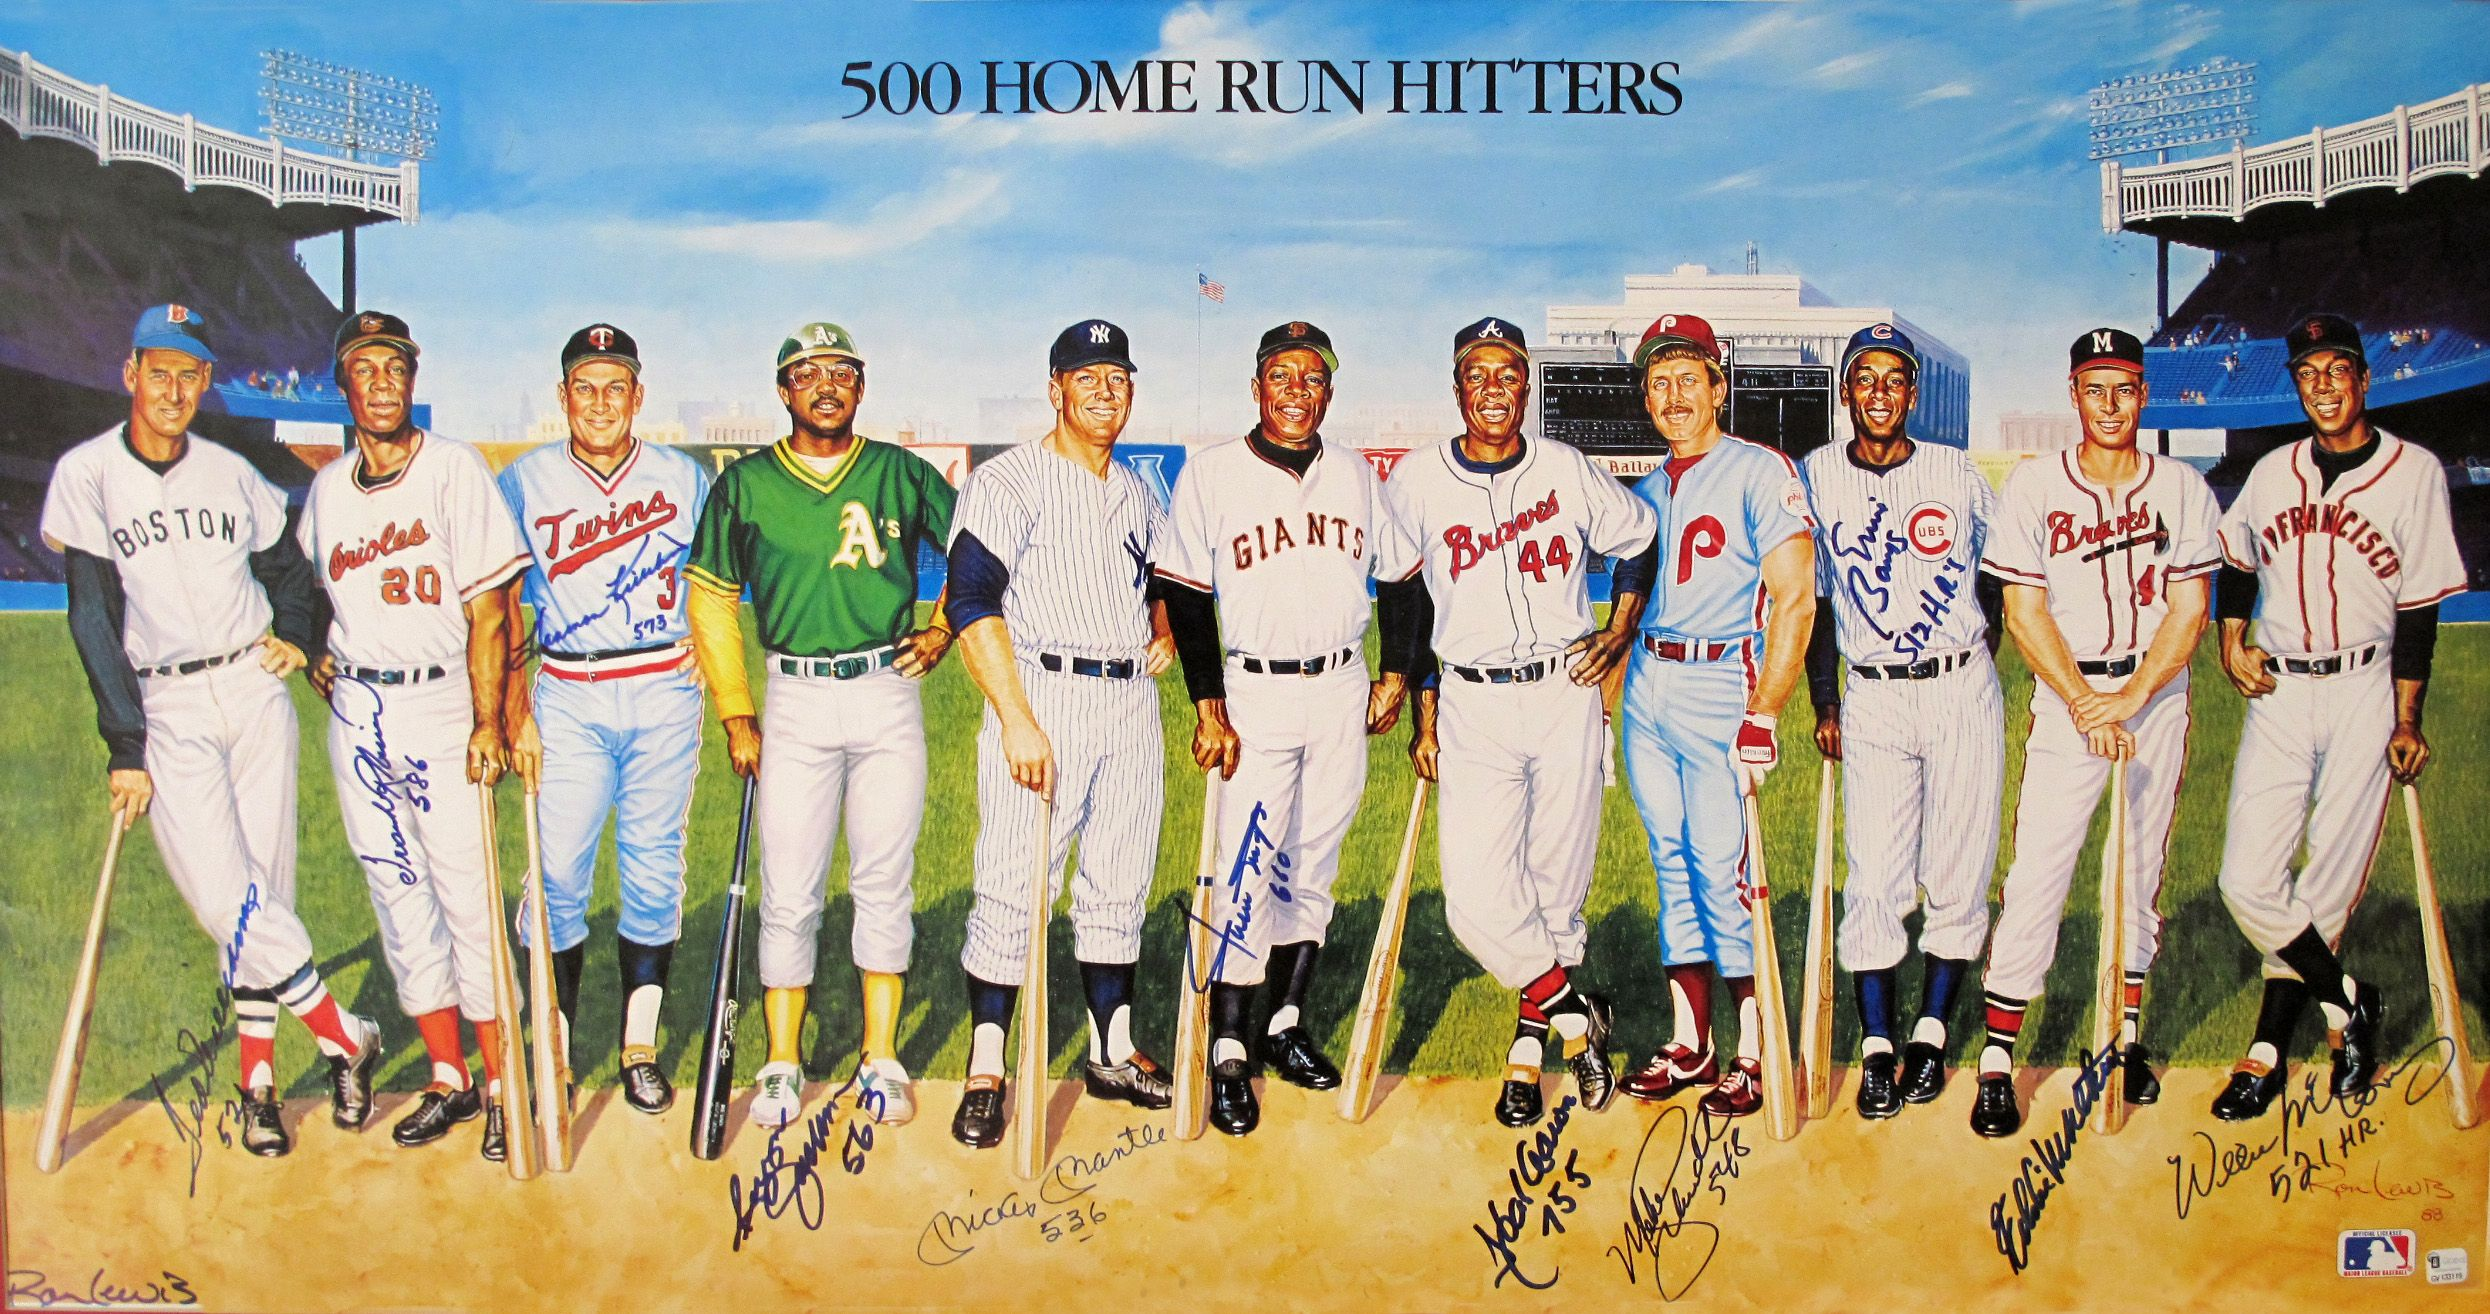 500 home run club picture and autograph.